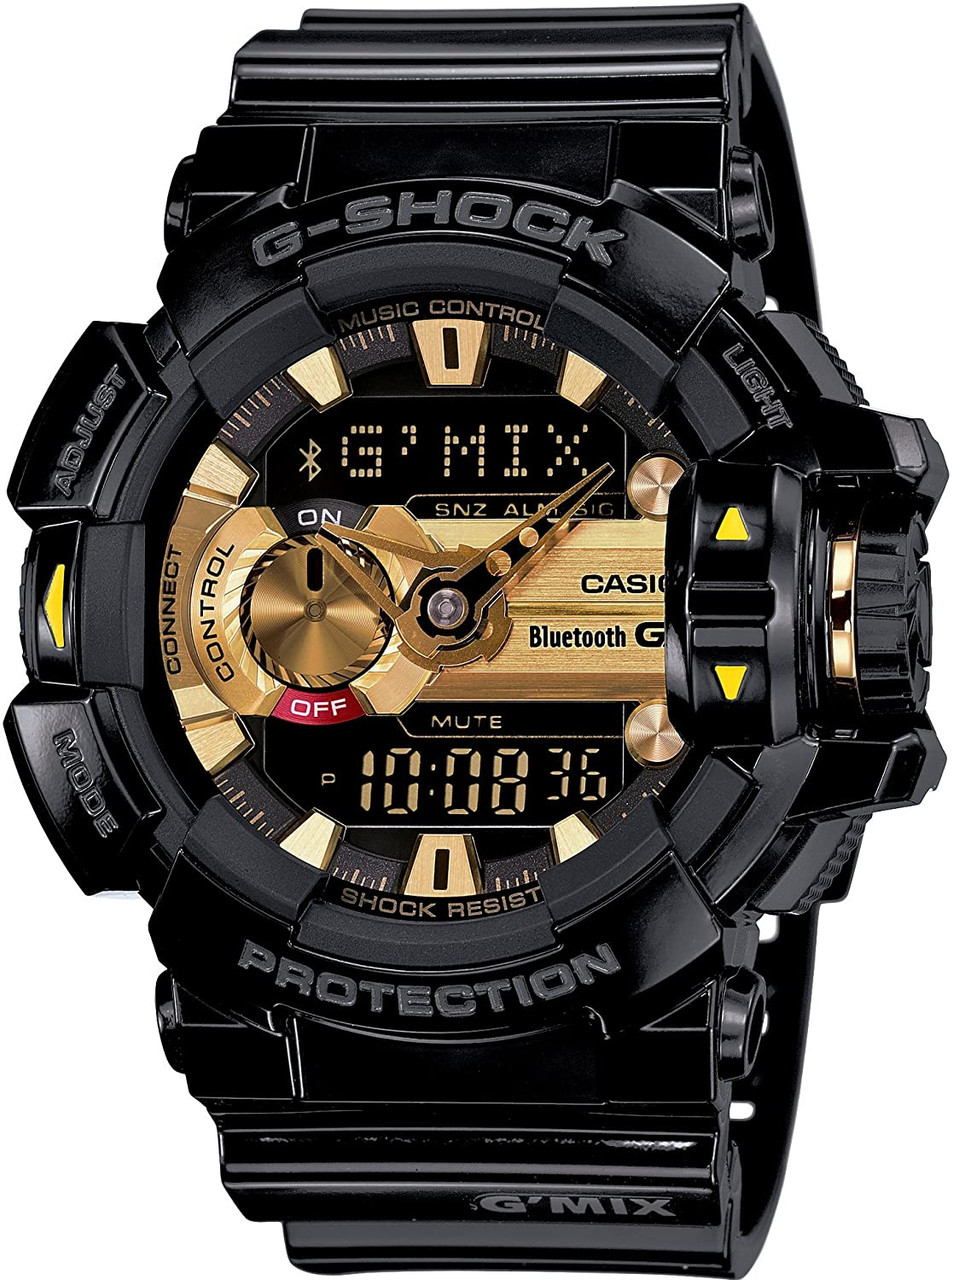 Casio G-Shock Bluetooth GBA-400-1A9JF G'Mix Series